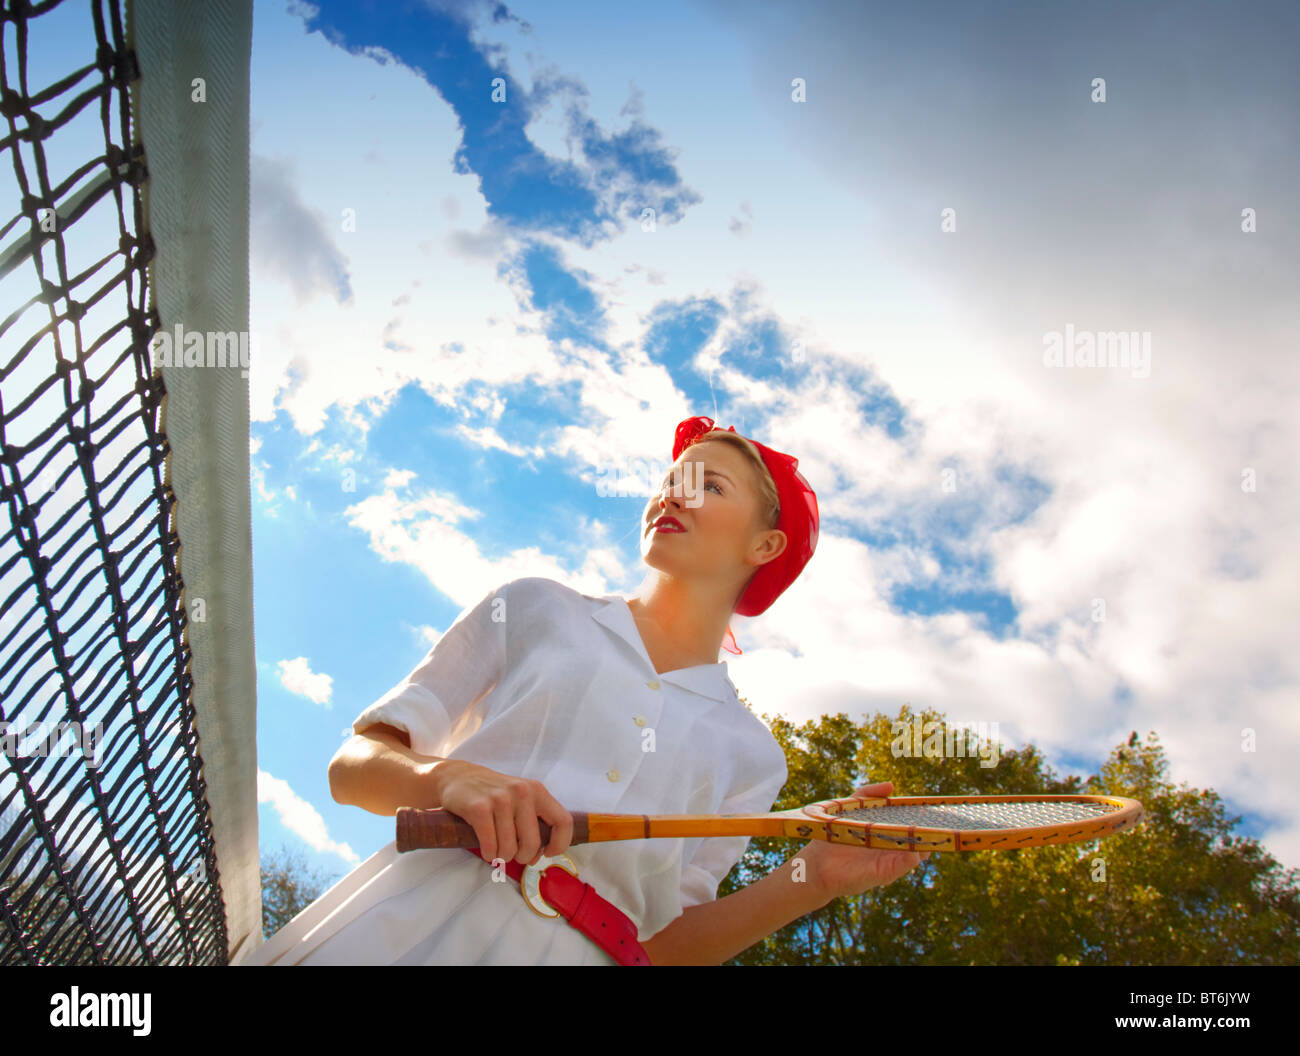 Woman playing tennis on a sunny day - Stock Image